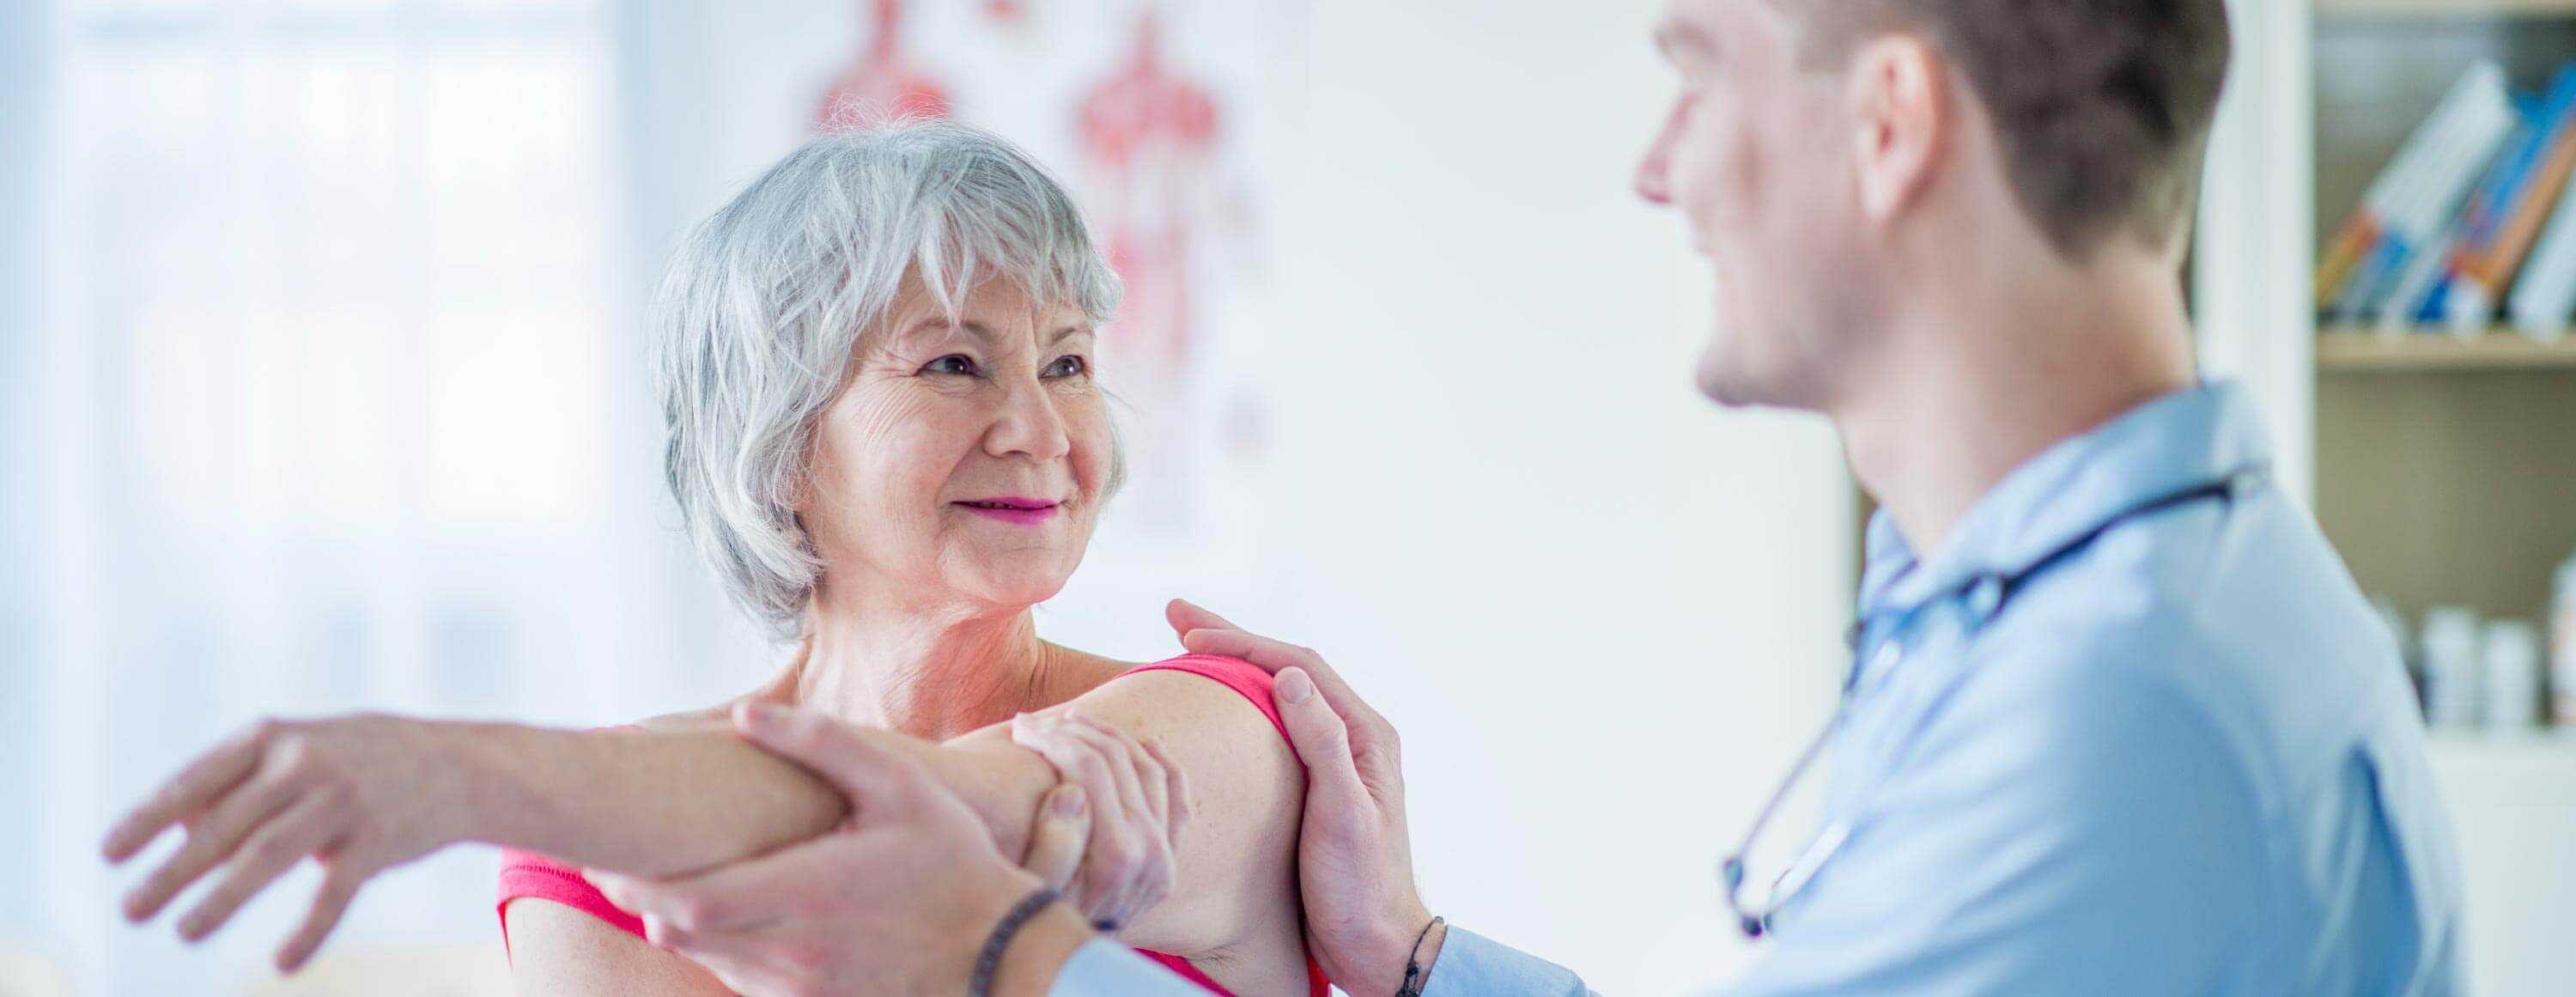 Onsite individual physiotherapy treatment for residents